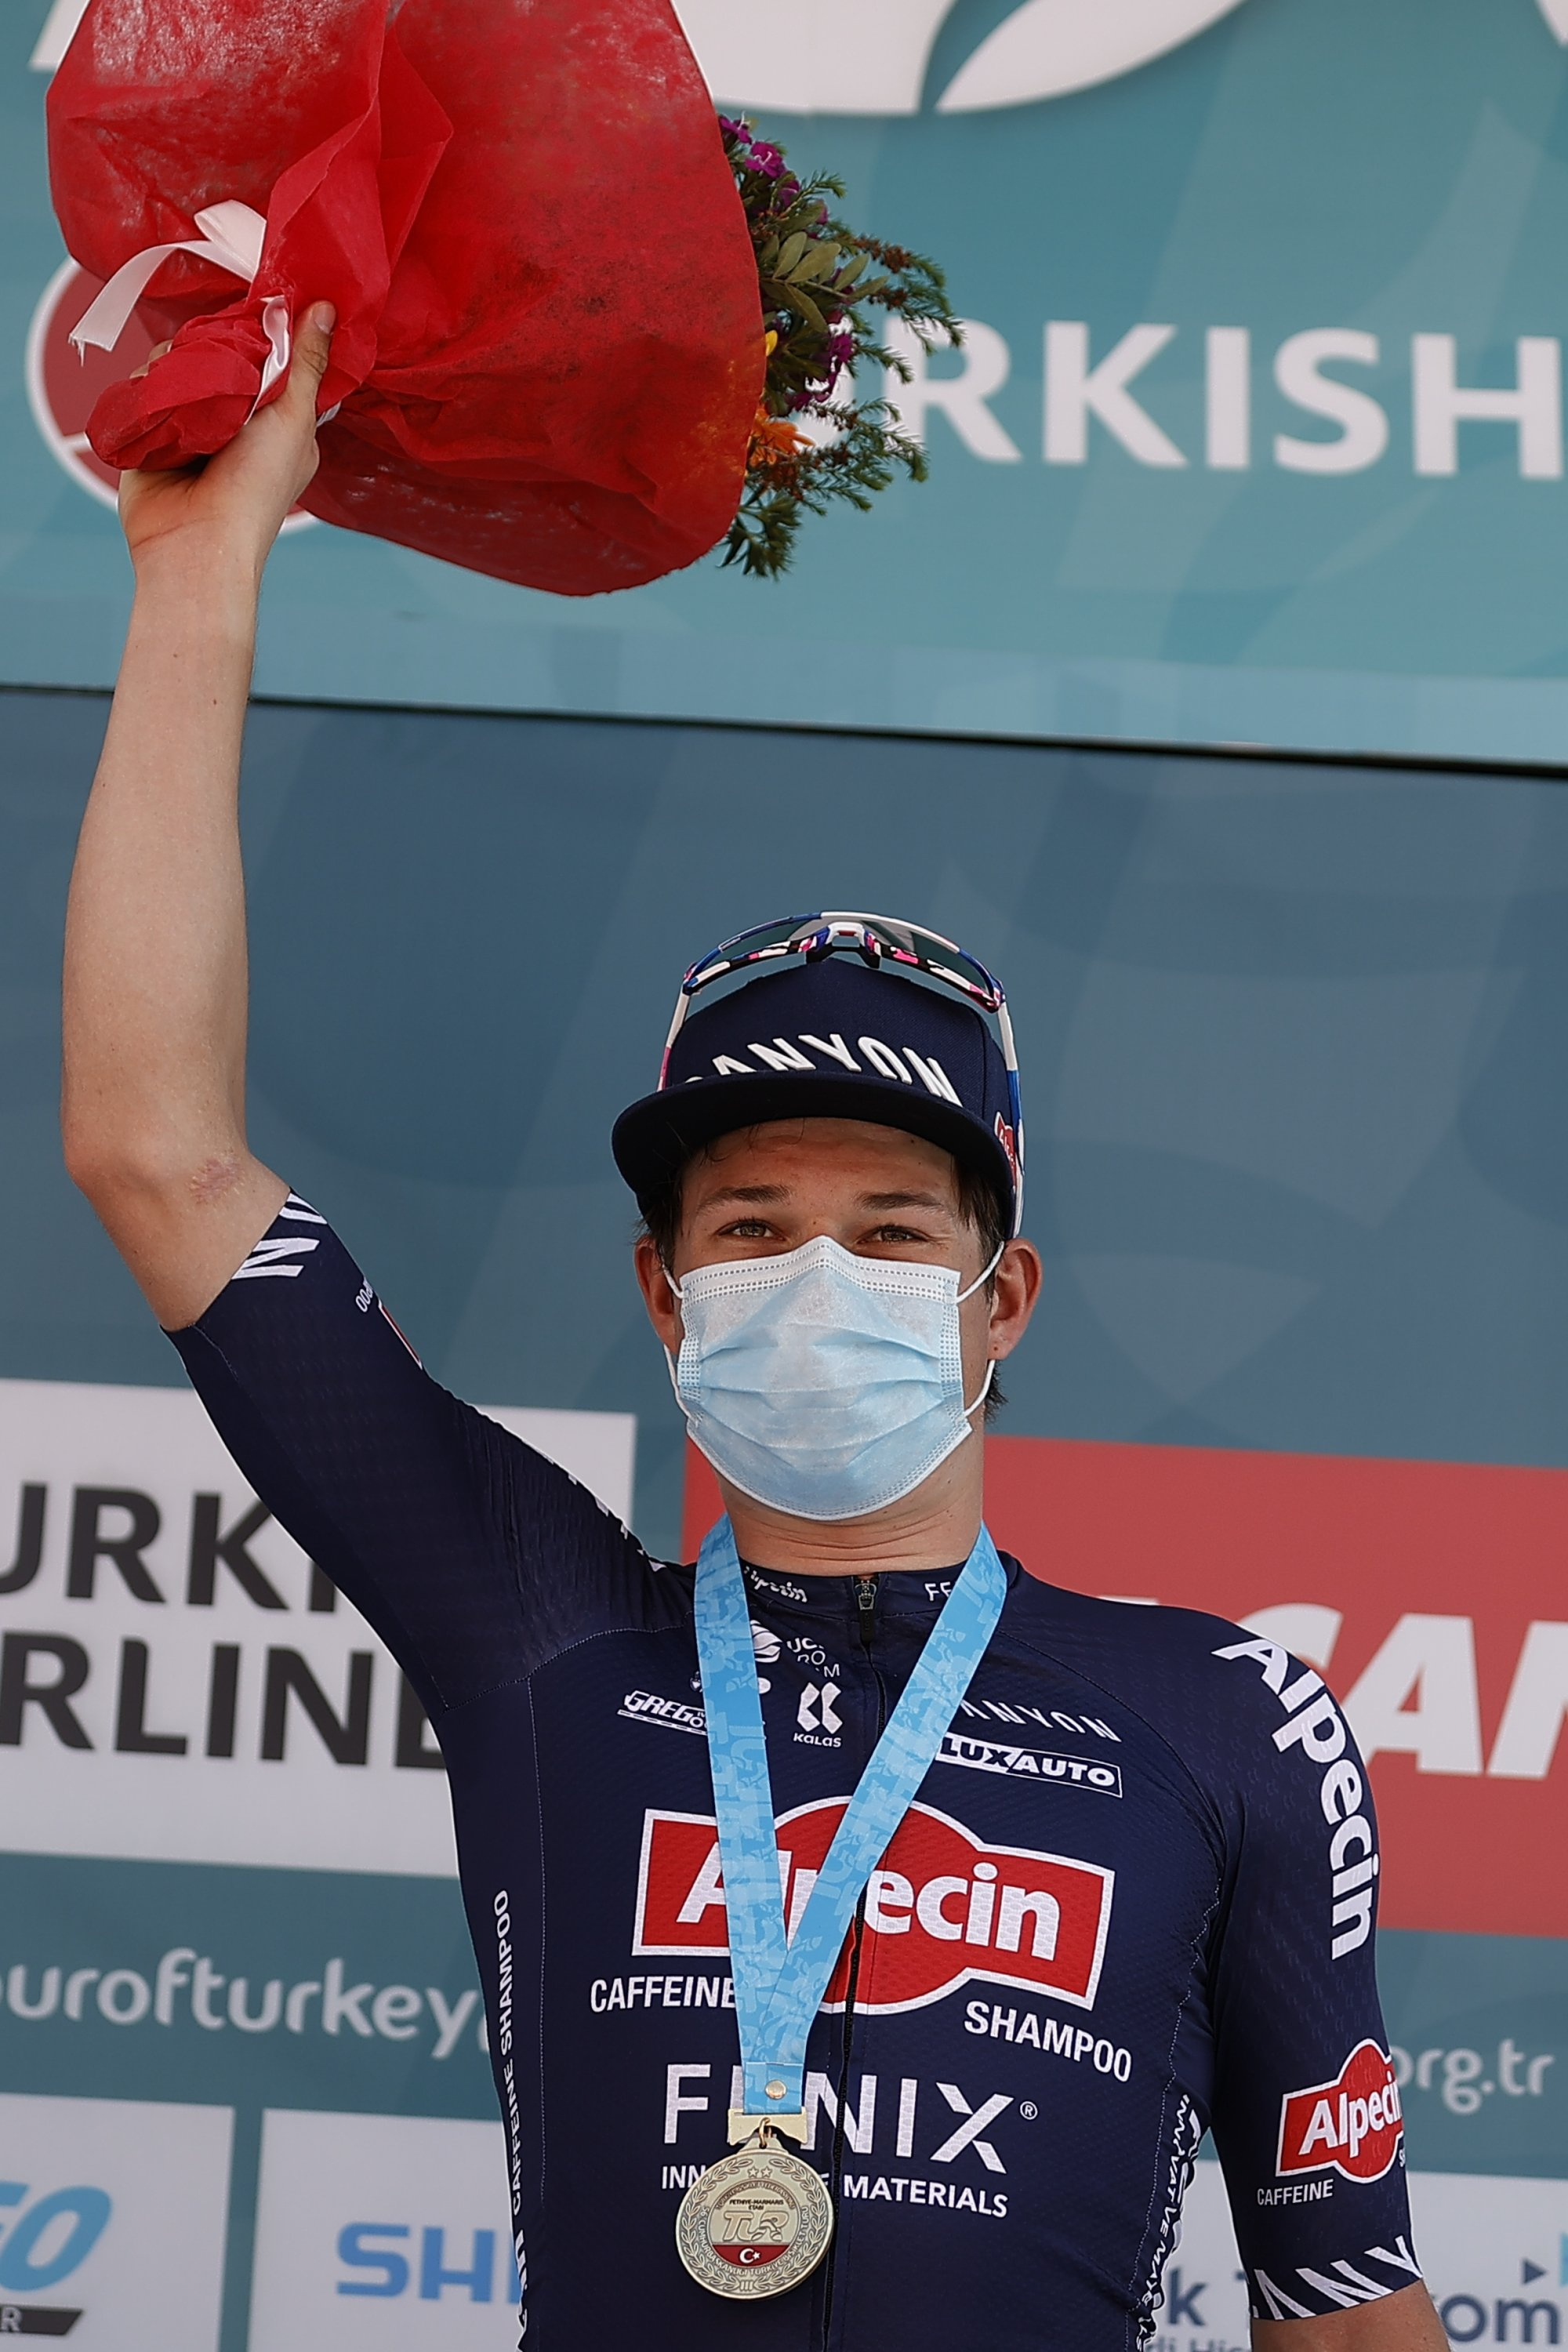 Belgium's Jasper Philipsen (L) after winning the sixth stage of the 56th Presidential Cycling Tour of Turkey, Marmaris, southern Turkey, April 16, 2021. (AA Photo)